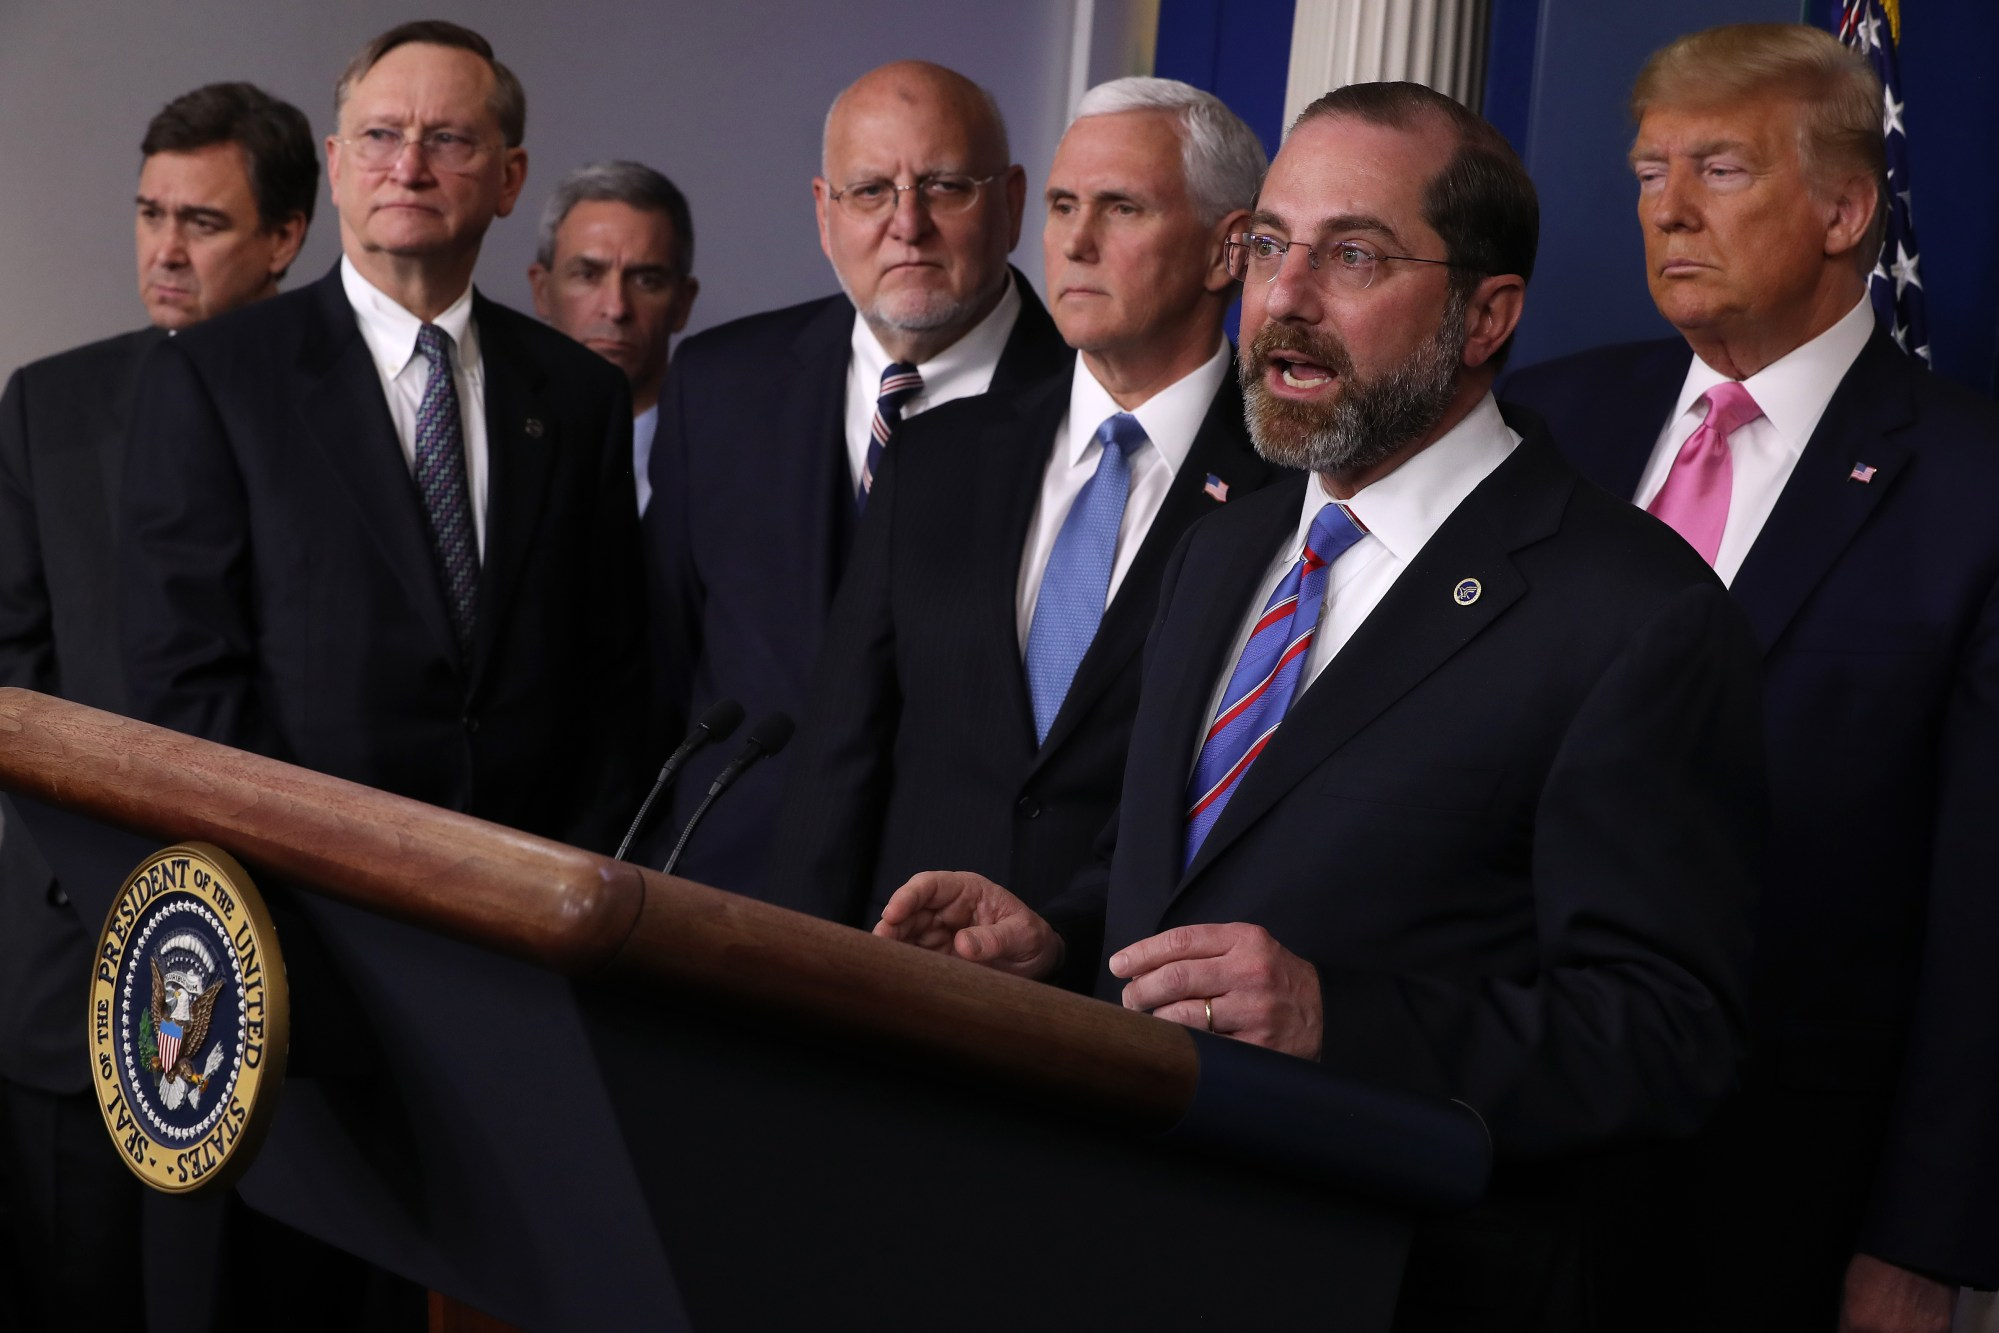 U.S. Health and Human Services Secretary Alex Azar speaks alongside President Donald Trump and other federal officials in the Brady Press Briefing Room at the White House, Feb. 26, 2020, in Washington, D.C. The health department head outlined U.S. efforts to mitigate spread of the coronavirus. (Chip Somodevilla/Getty Images)